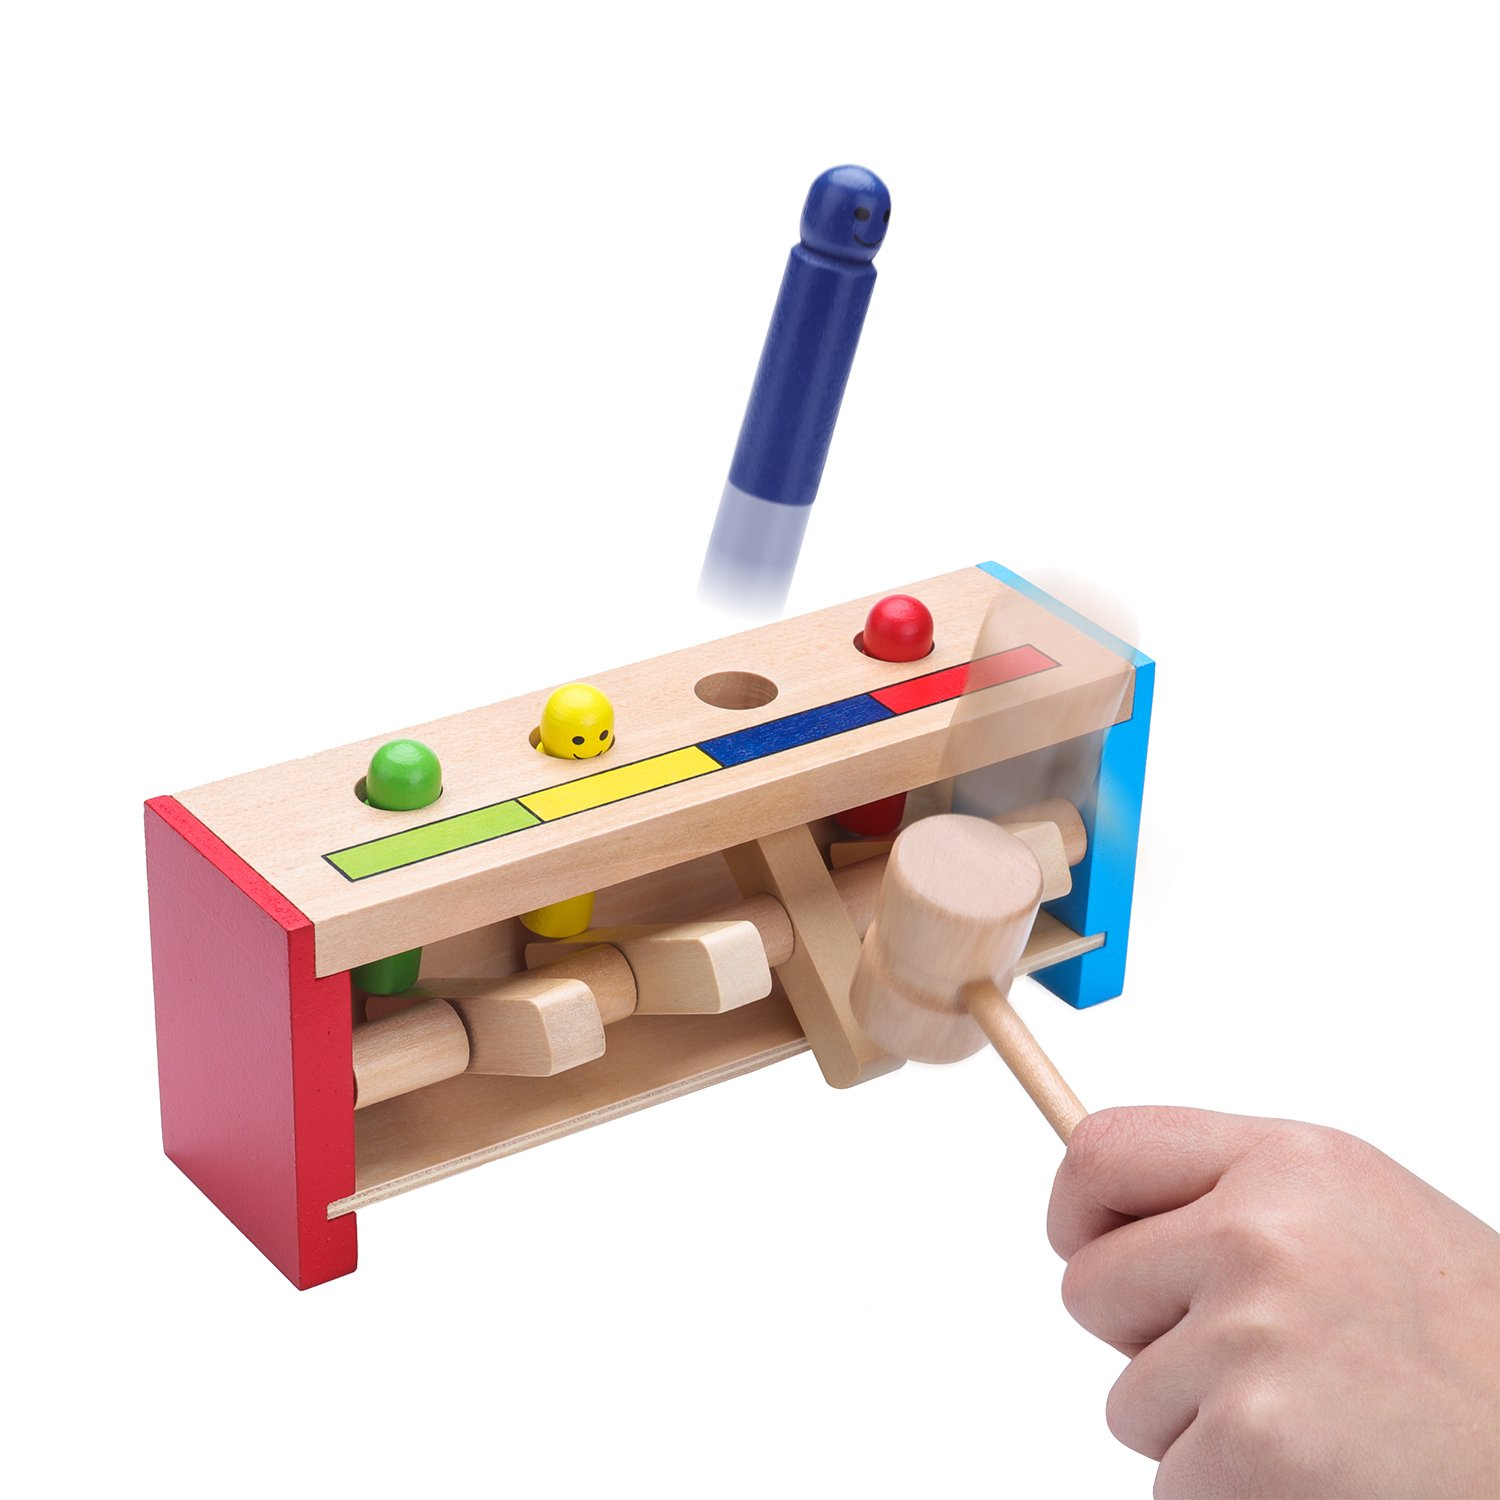 AENMIL Pounding Bench Wooden Toy with Mallet Pounding Bench Early Educational Development Toys for Preschool Toddlers